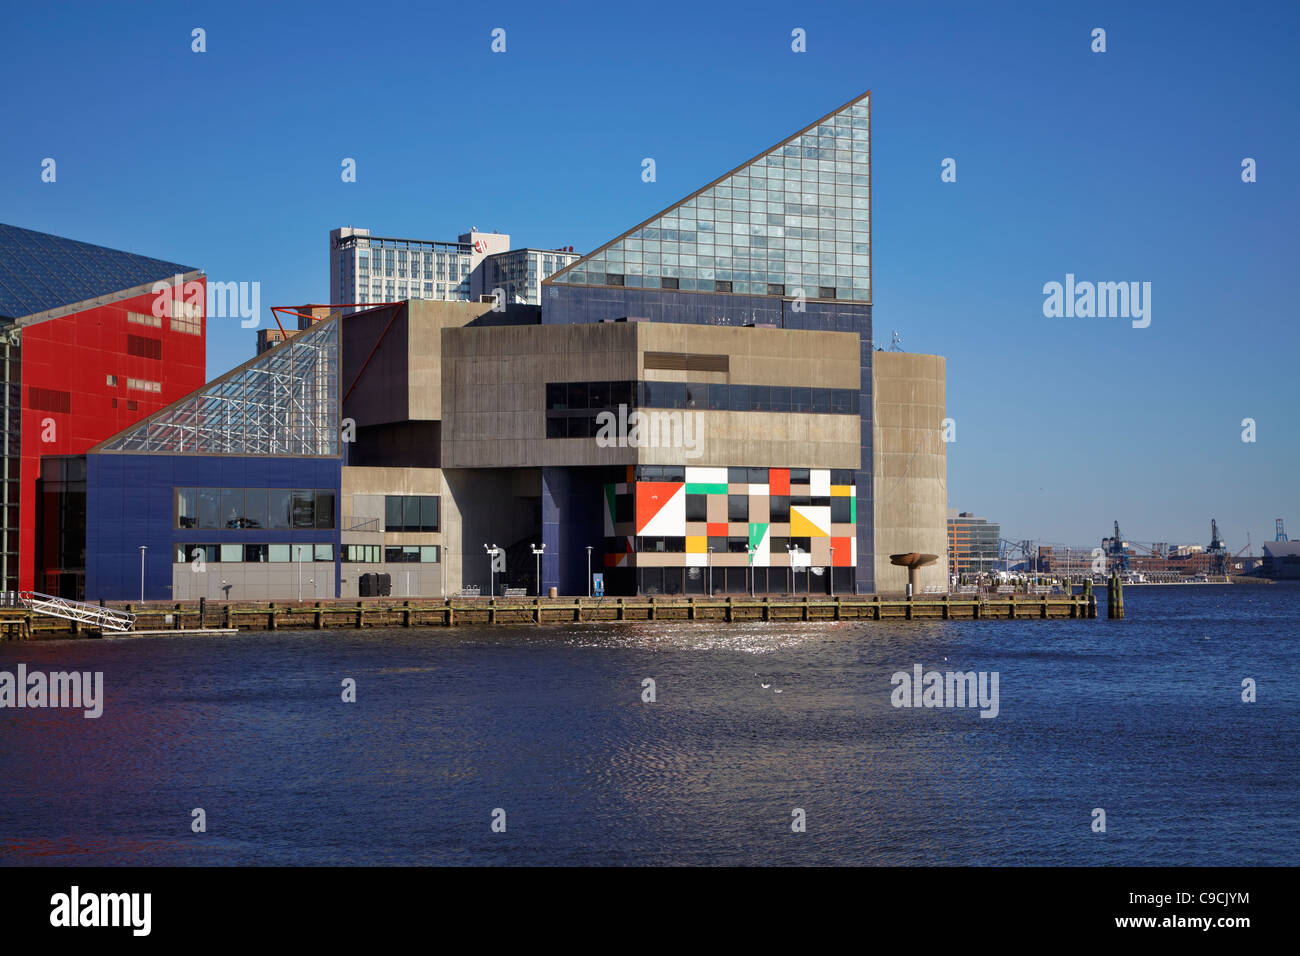 Looking east across the Inner Harbor to the National Aquarium in Baltimore, Maryland. - Stock Image